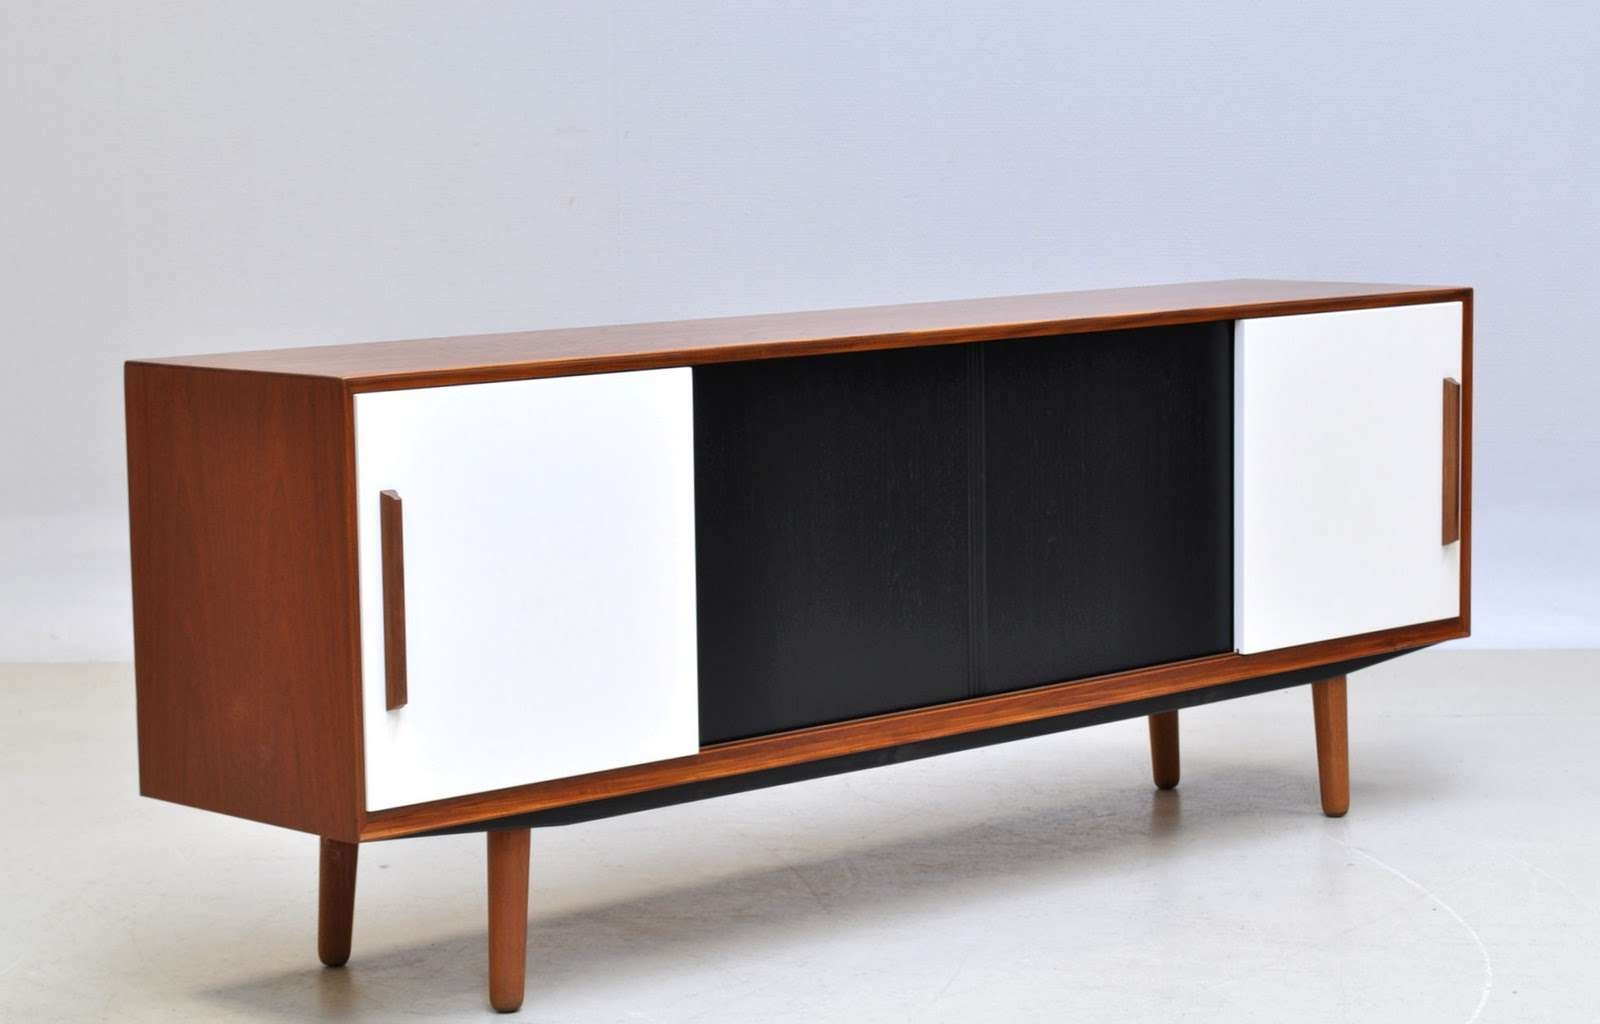 Best Design Ideas Of Modern Sideboards. Home Furniture (View 3 of 20)